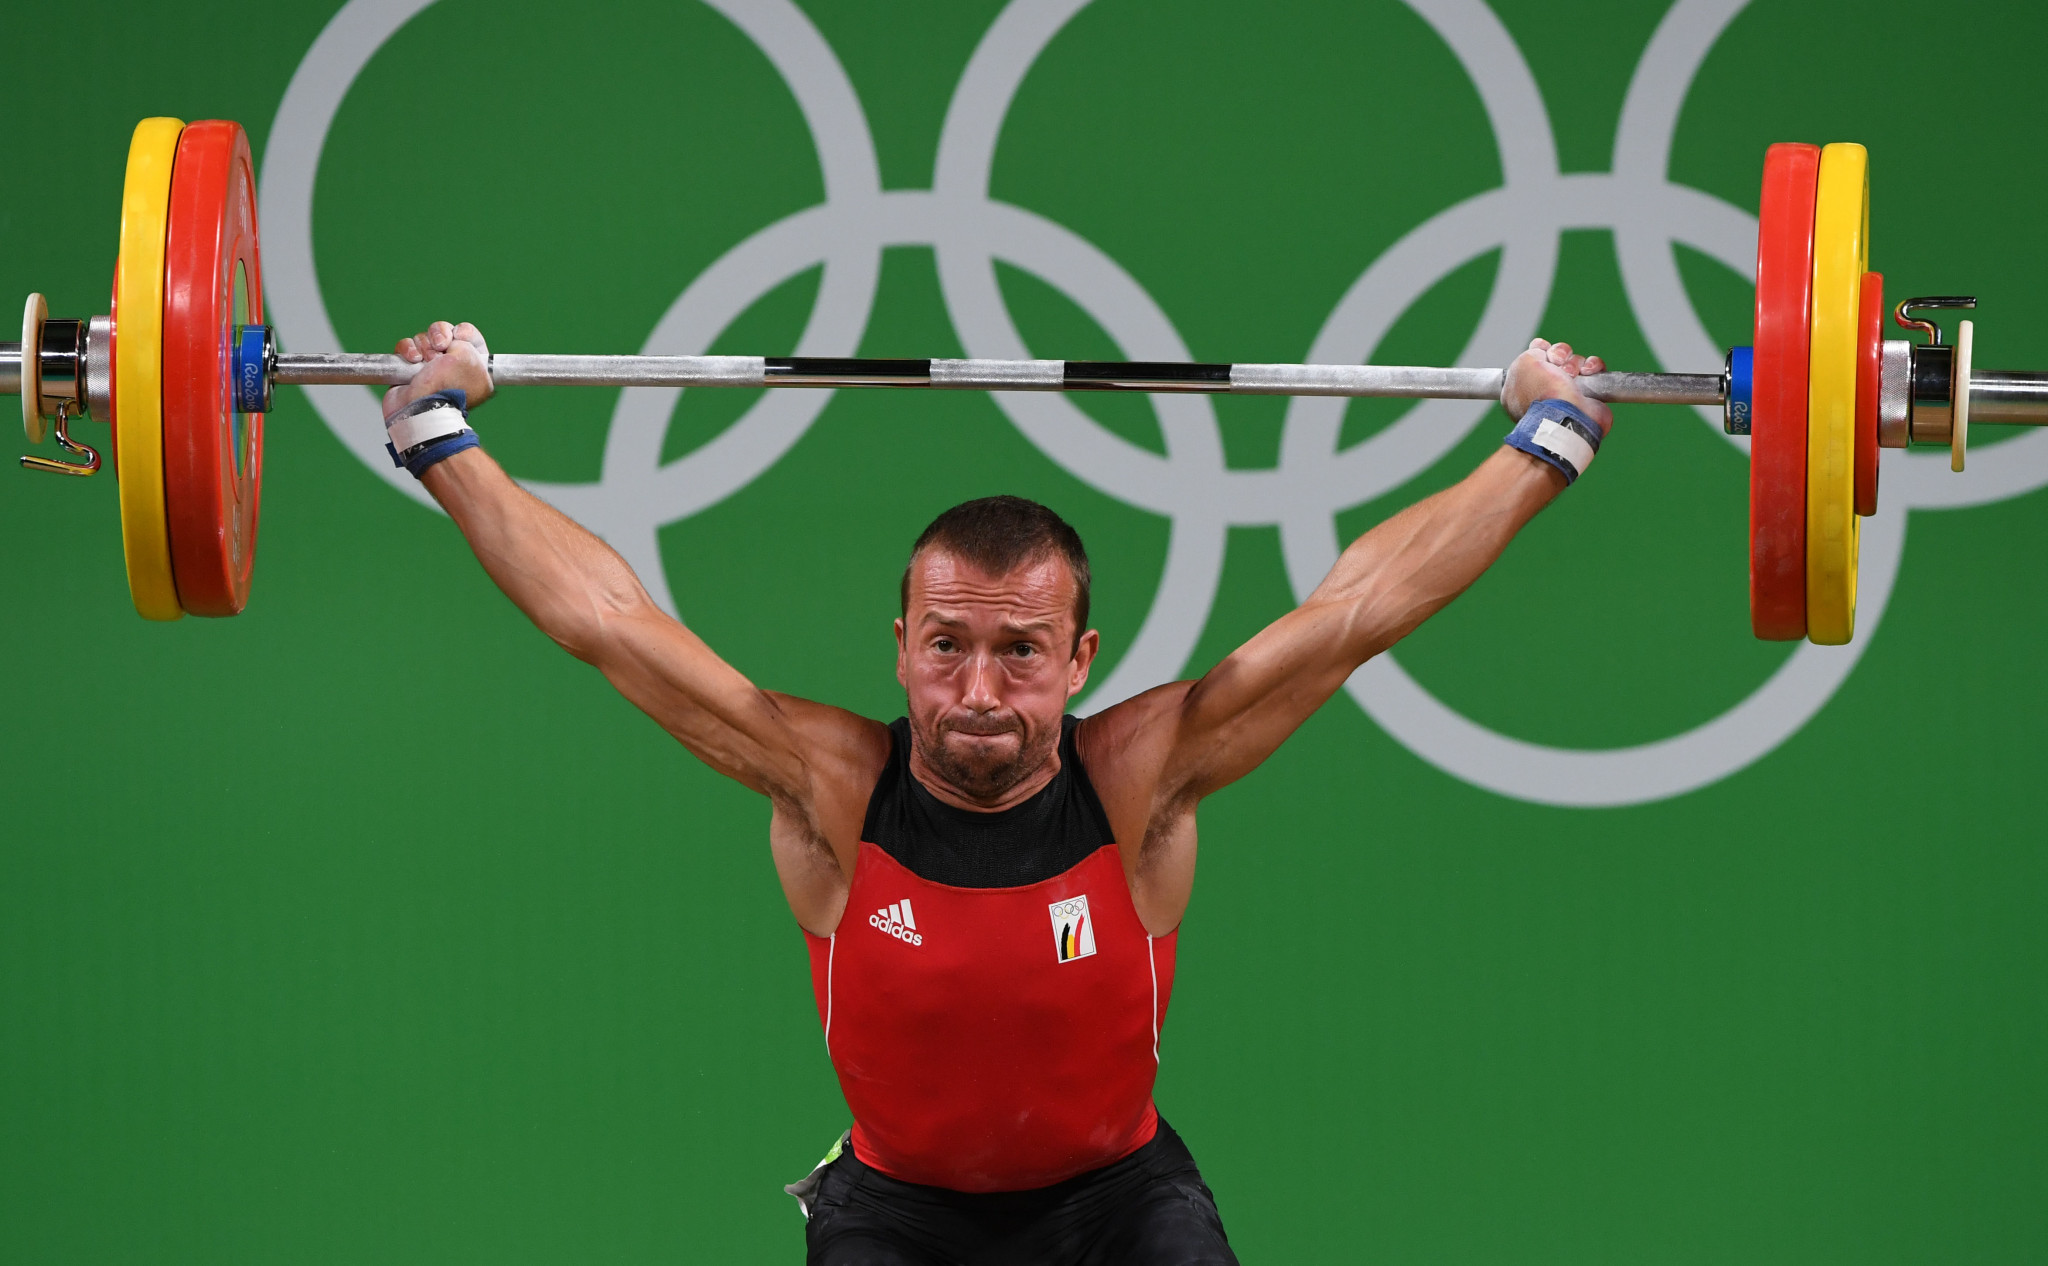 Belgium's Tom Goegebuer has competed at the Olympic Games four times and supports the International Weightlifting Federation's tough stance ©Getty Images